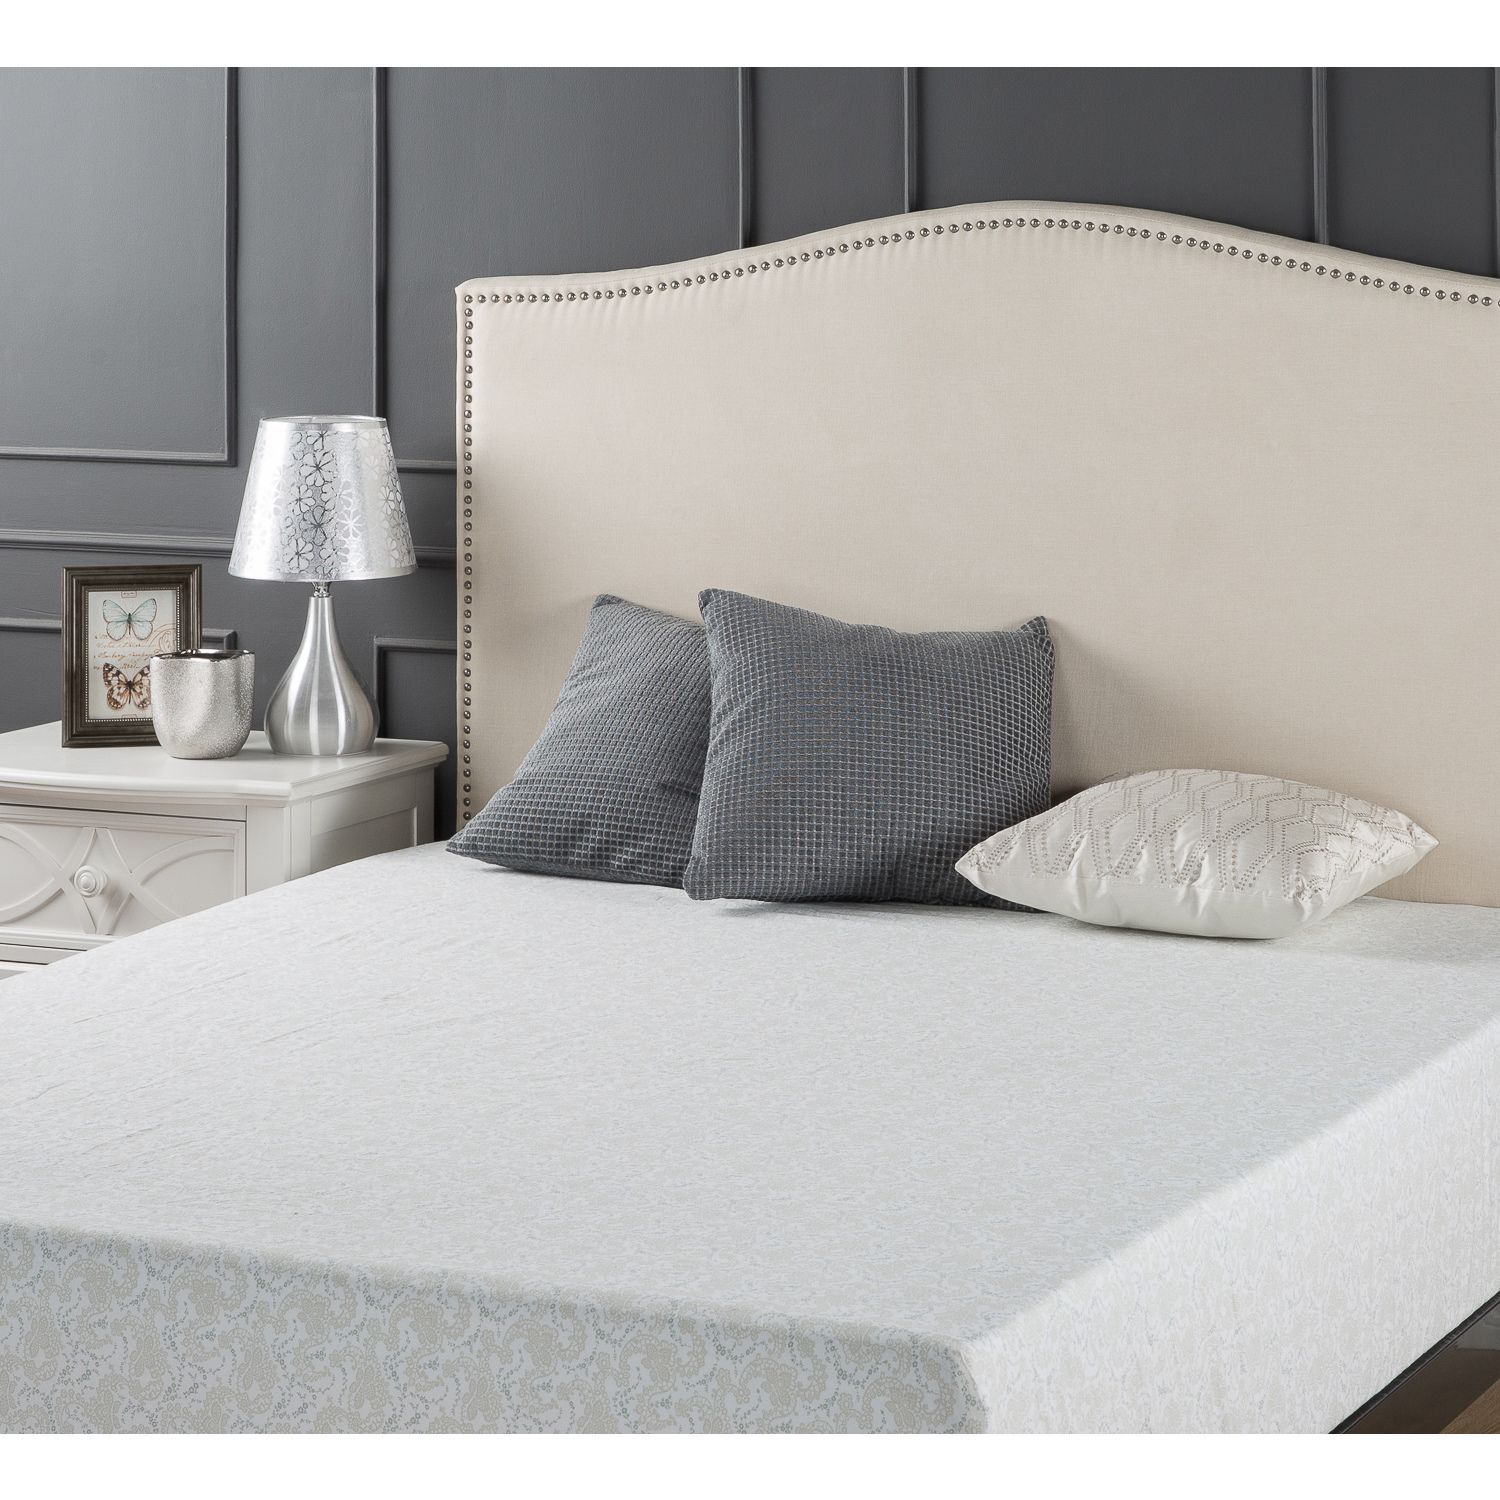 priage upholstered arched nailhead headboard full/queen taupe